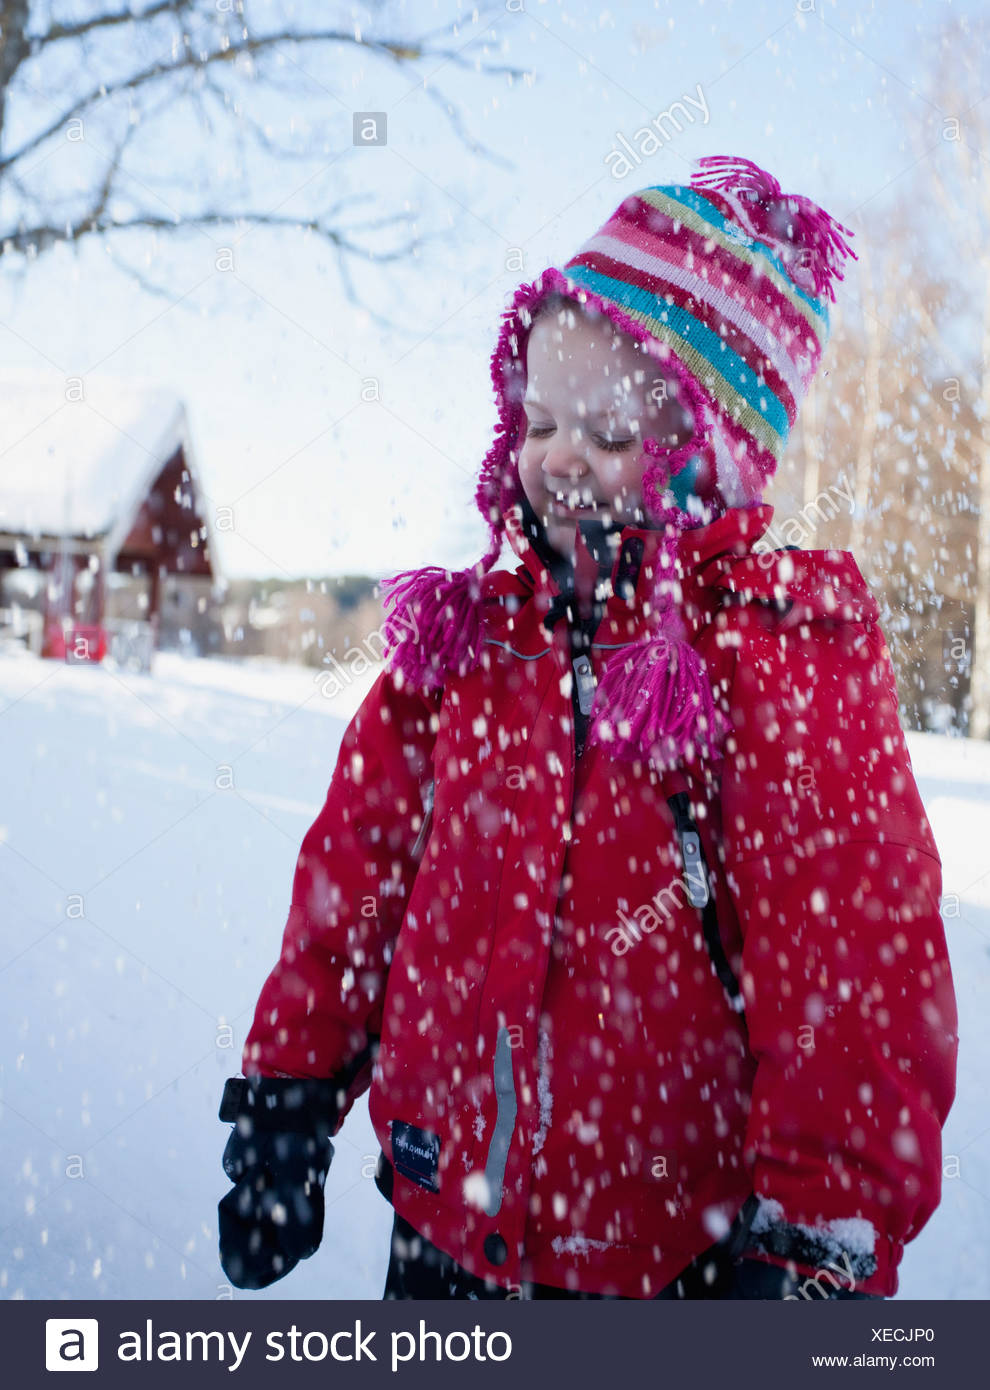 Girl (6-7) standing in snow fall Stock Photo